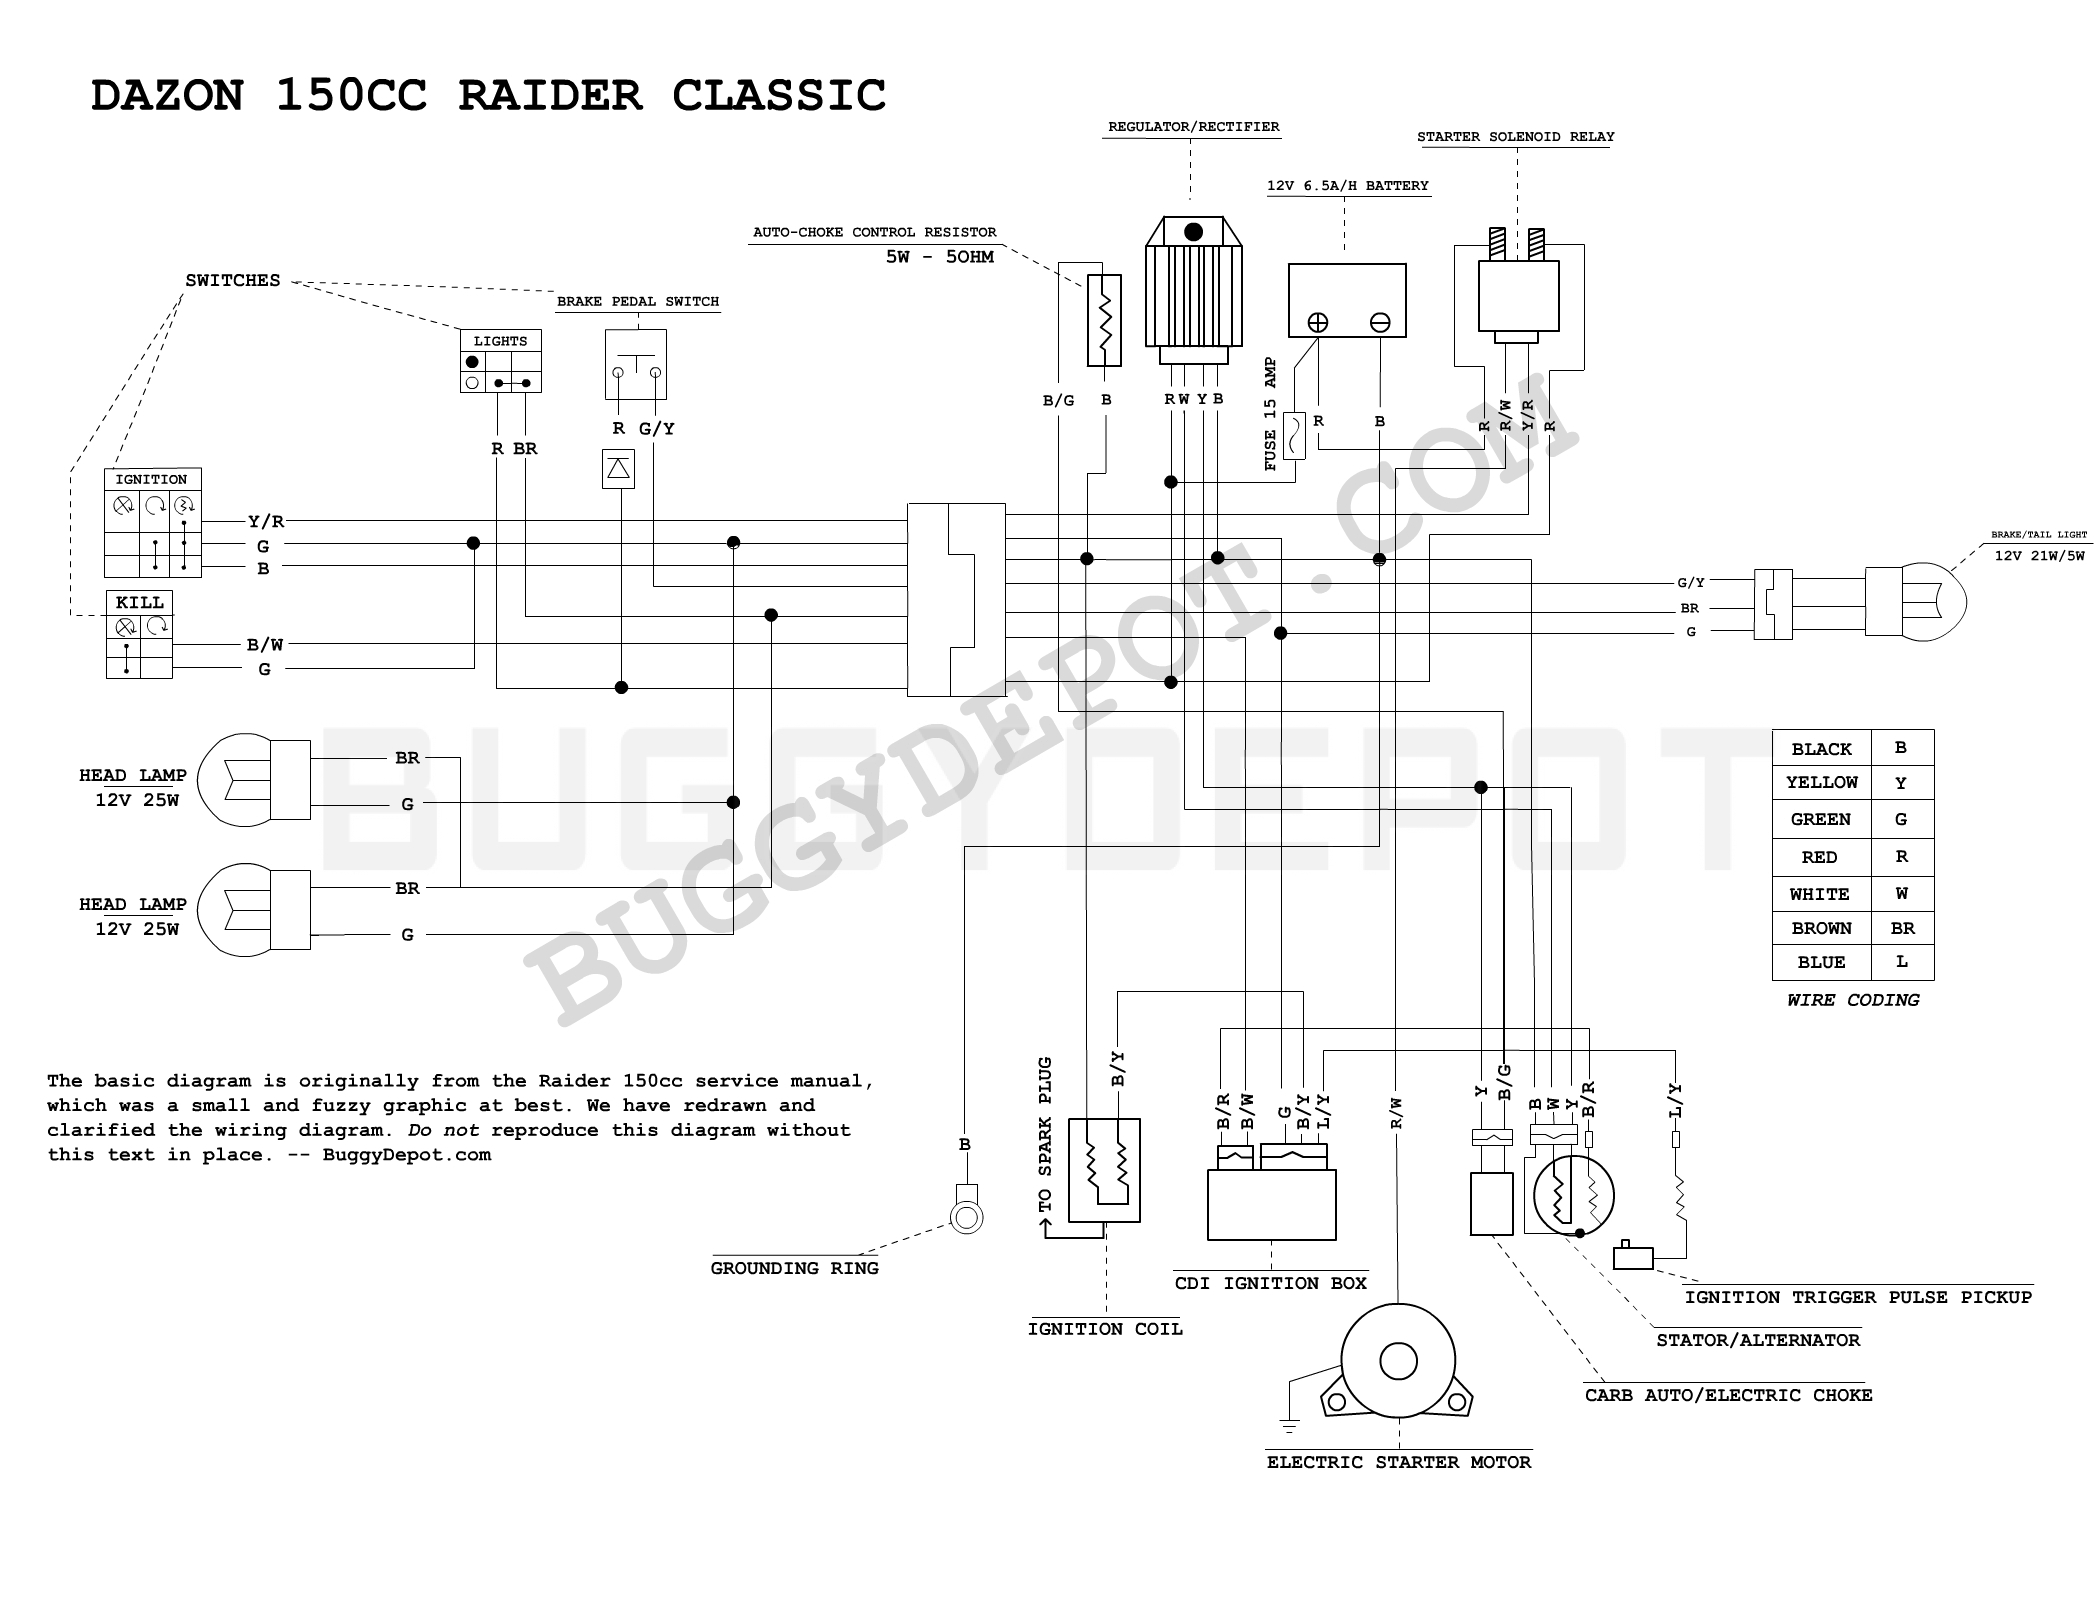 article_33_1278205207 crossfire 150r wiring diagram buggy depot technical center  at mr168.co